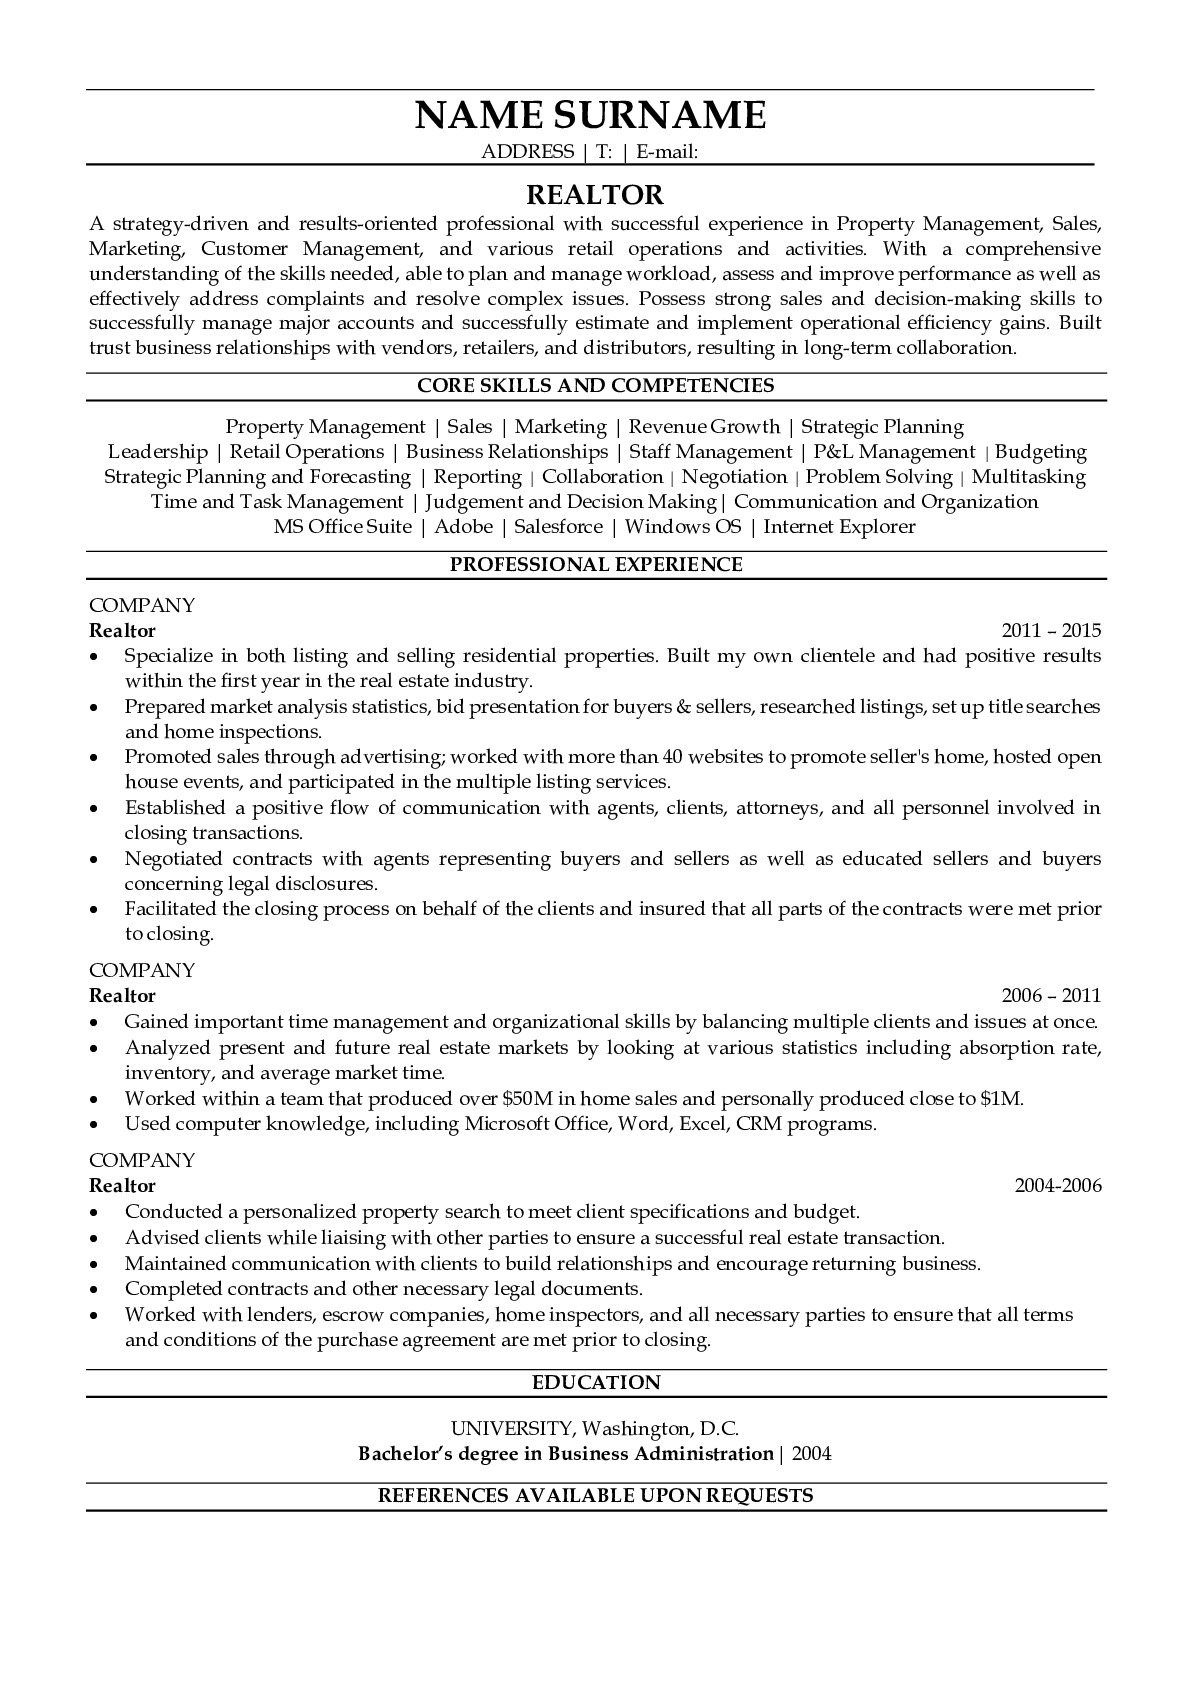 Resume Example for Realtor